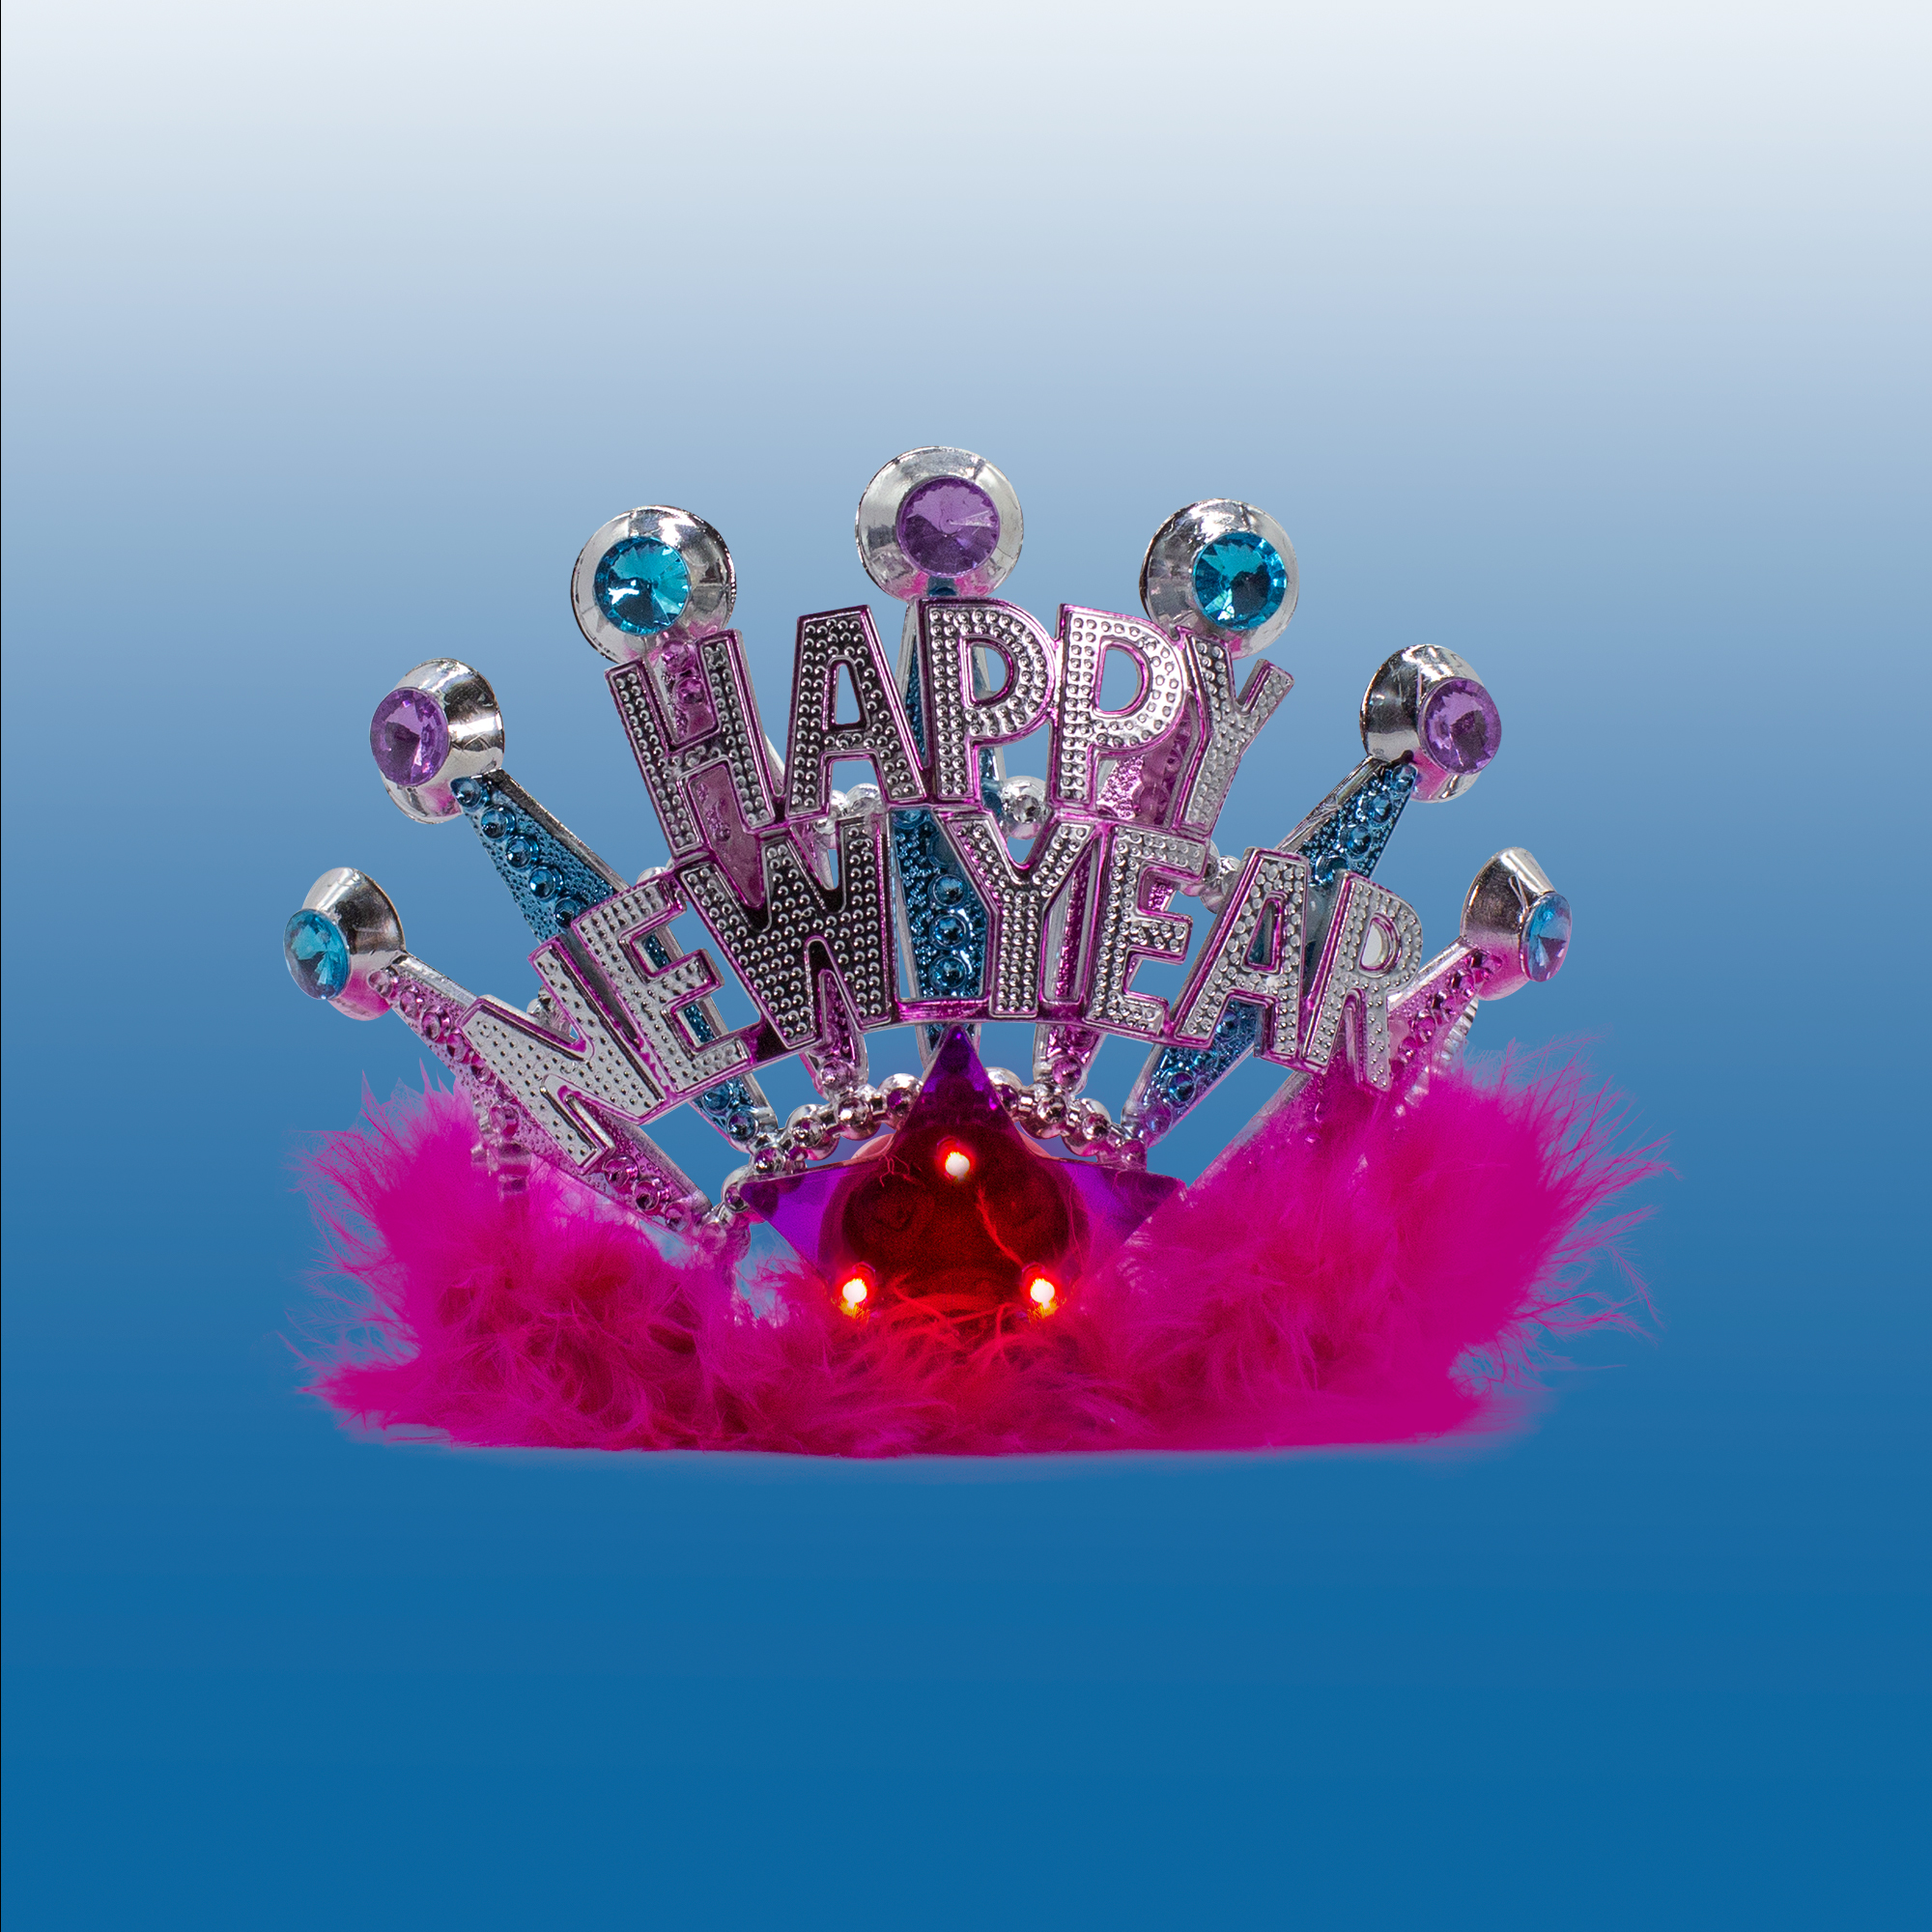 Fun Central C582 LED Light Up Happy New Year Tiara